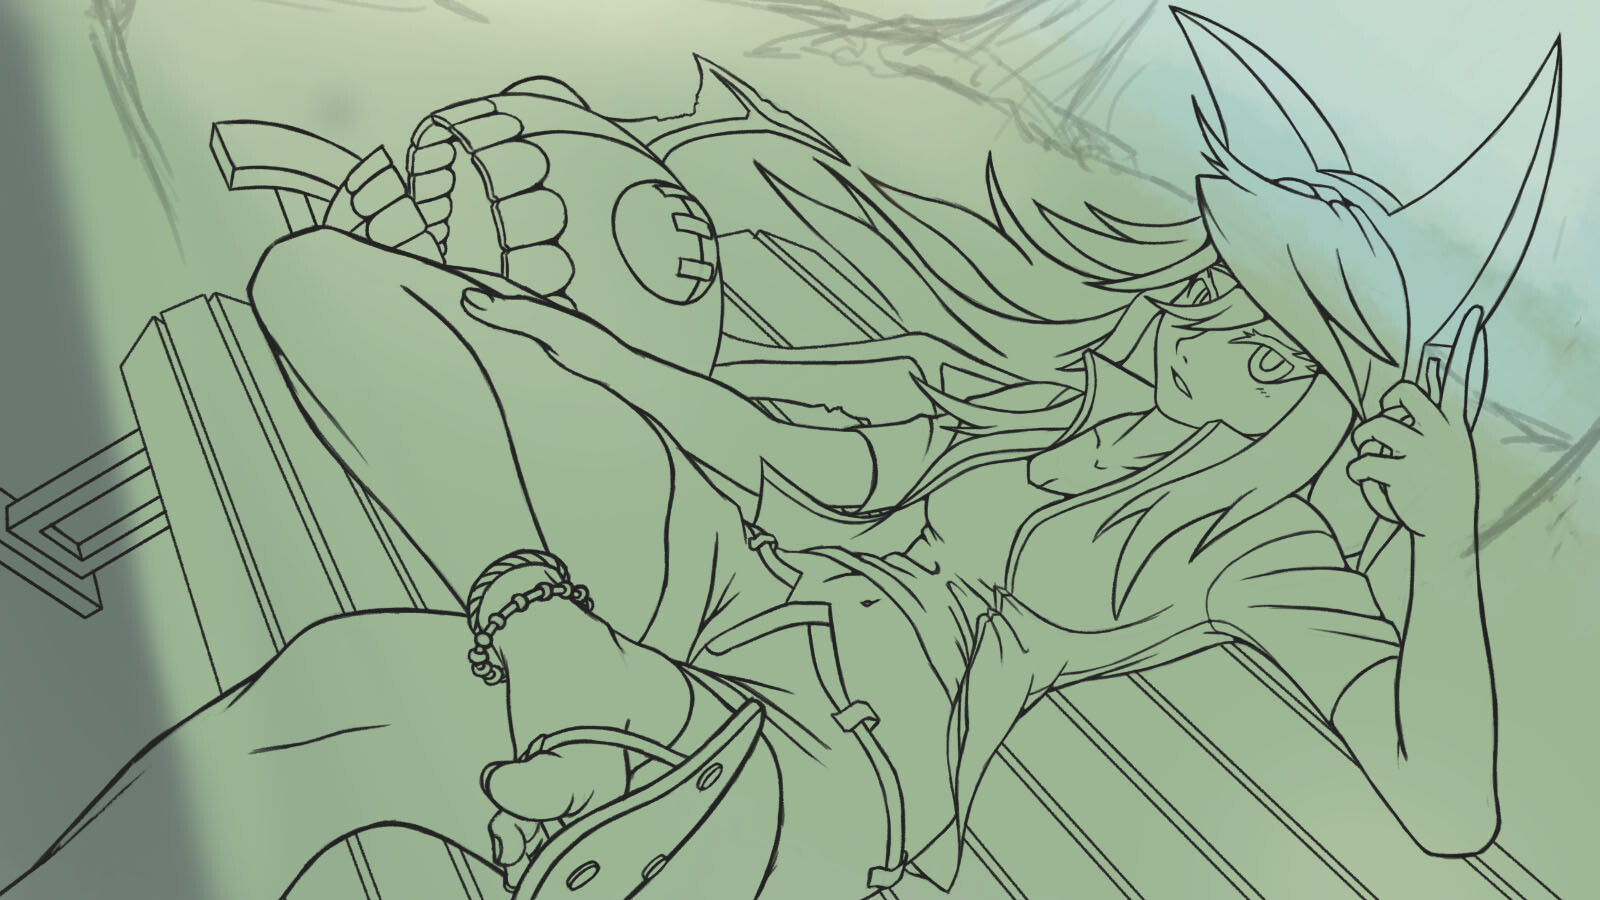 Process #3: Lineart and setting background color/tone.